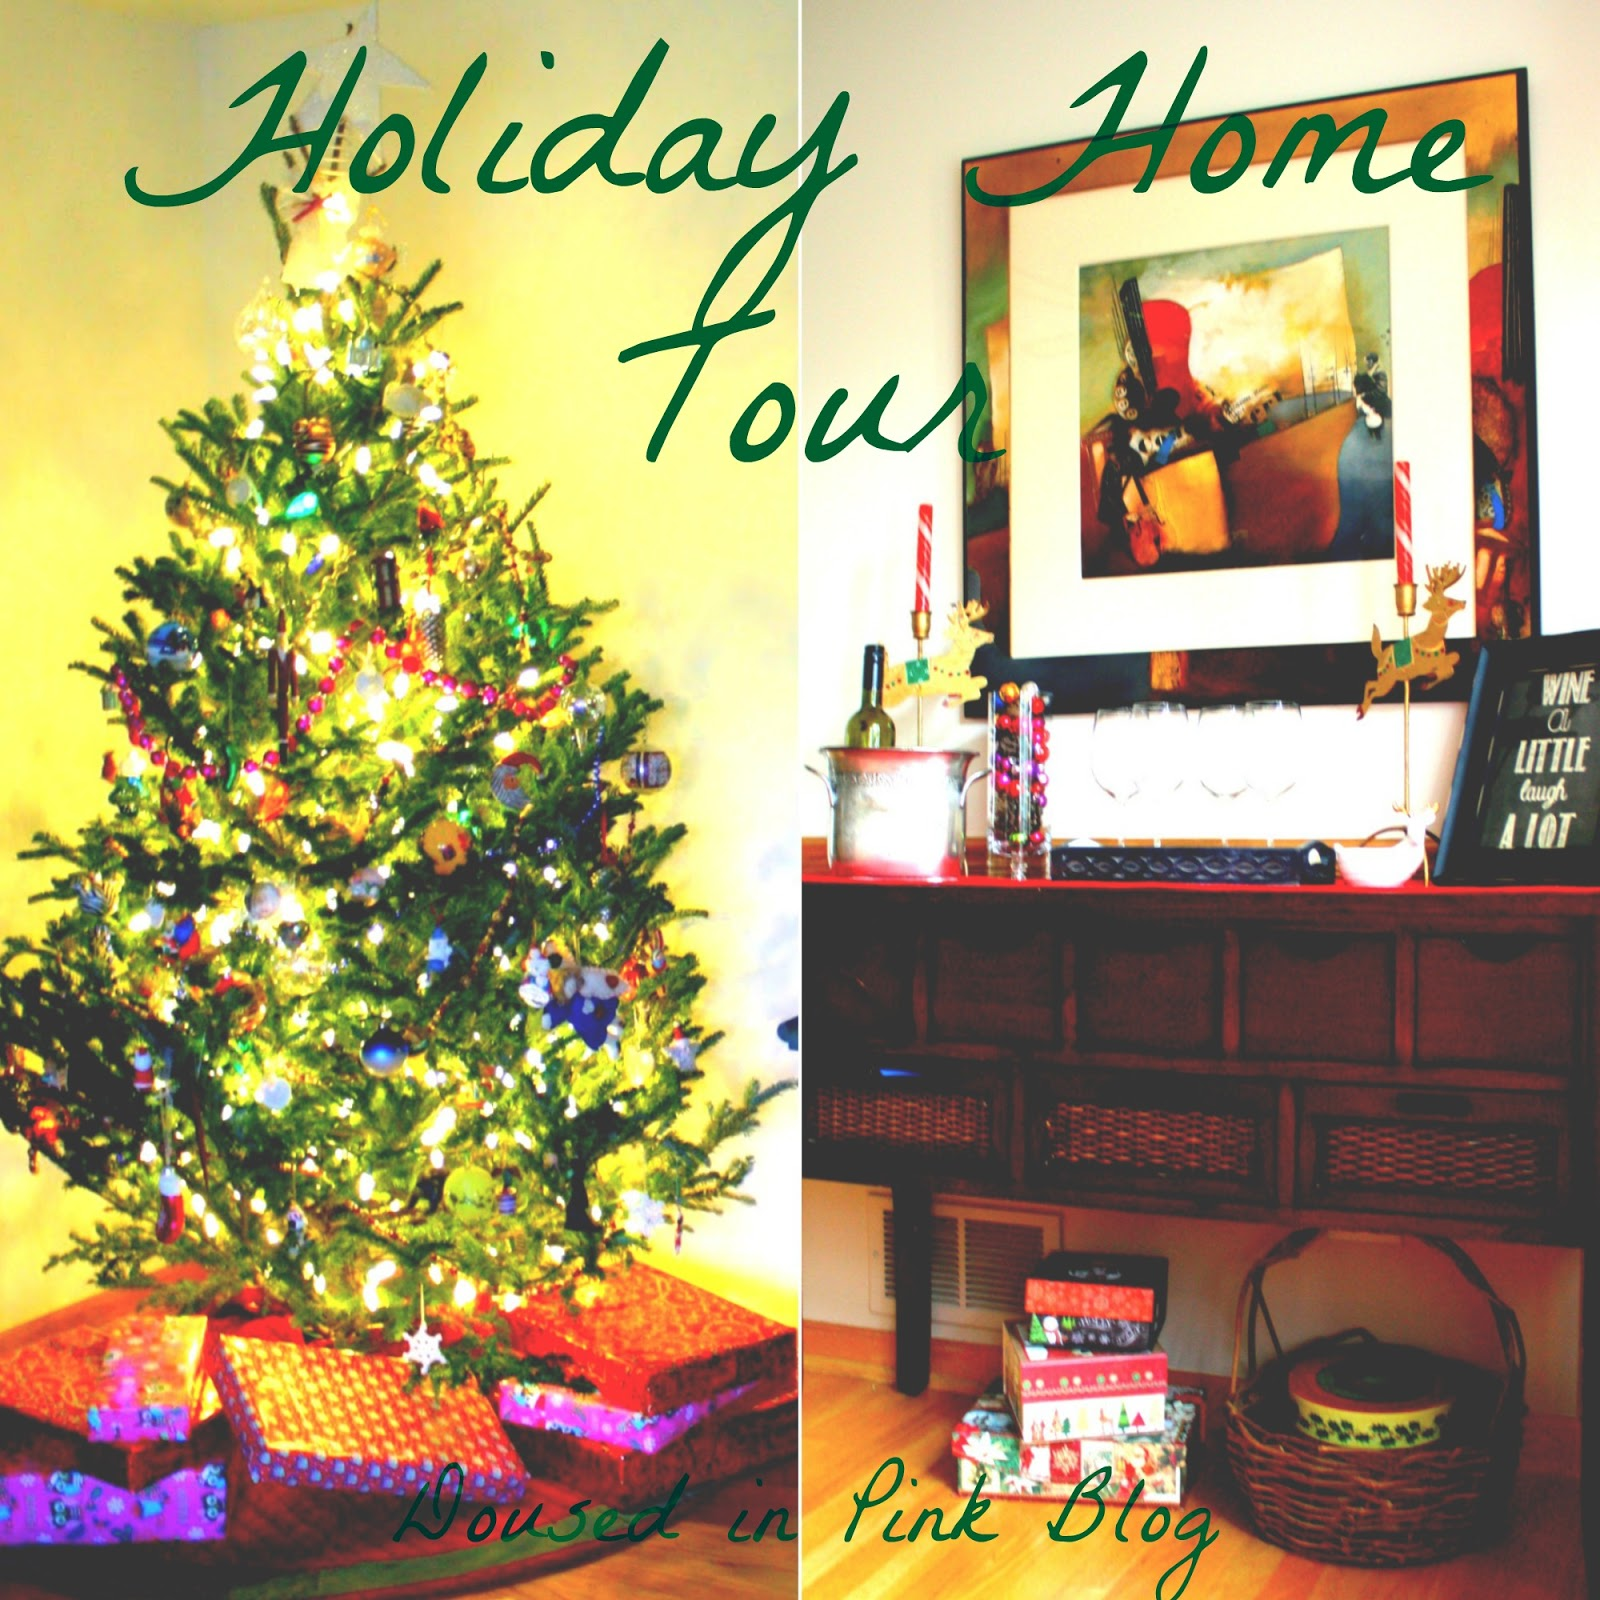 Holiday Home Tour 2015 - Doused in Pink | Chicago Fashion + Style Blog